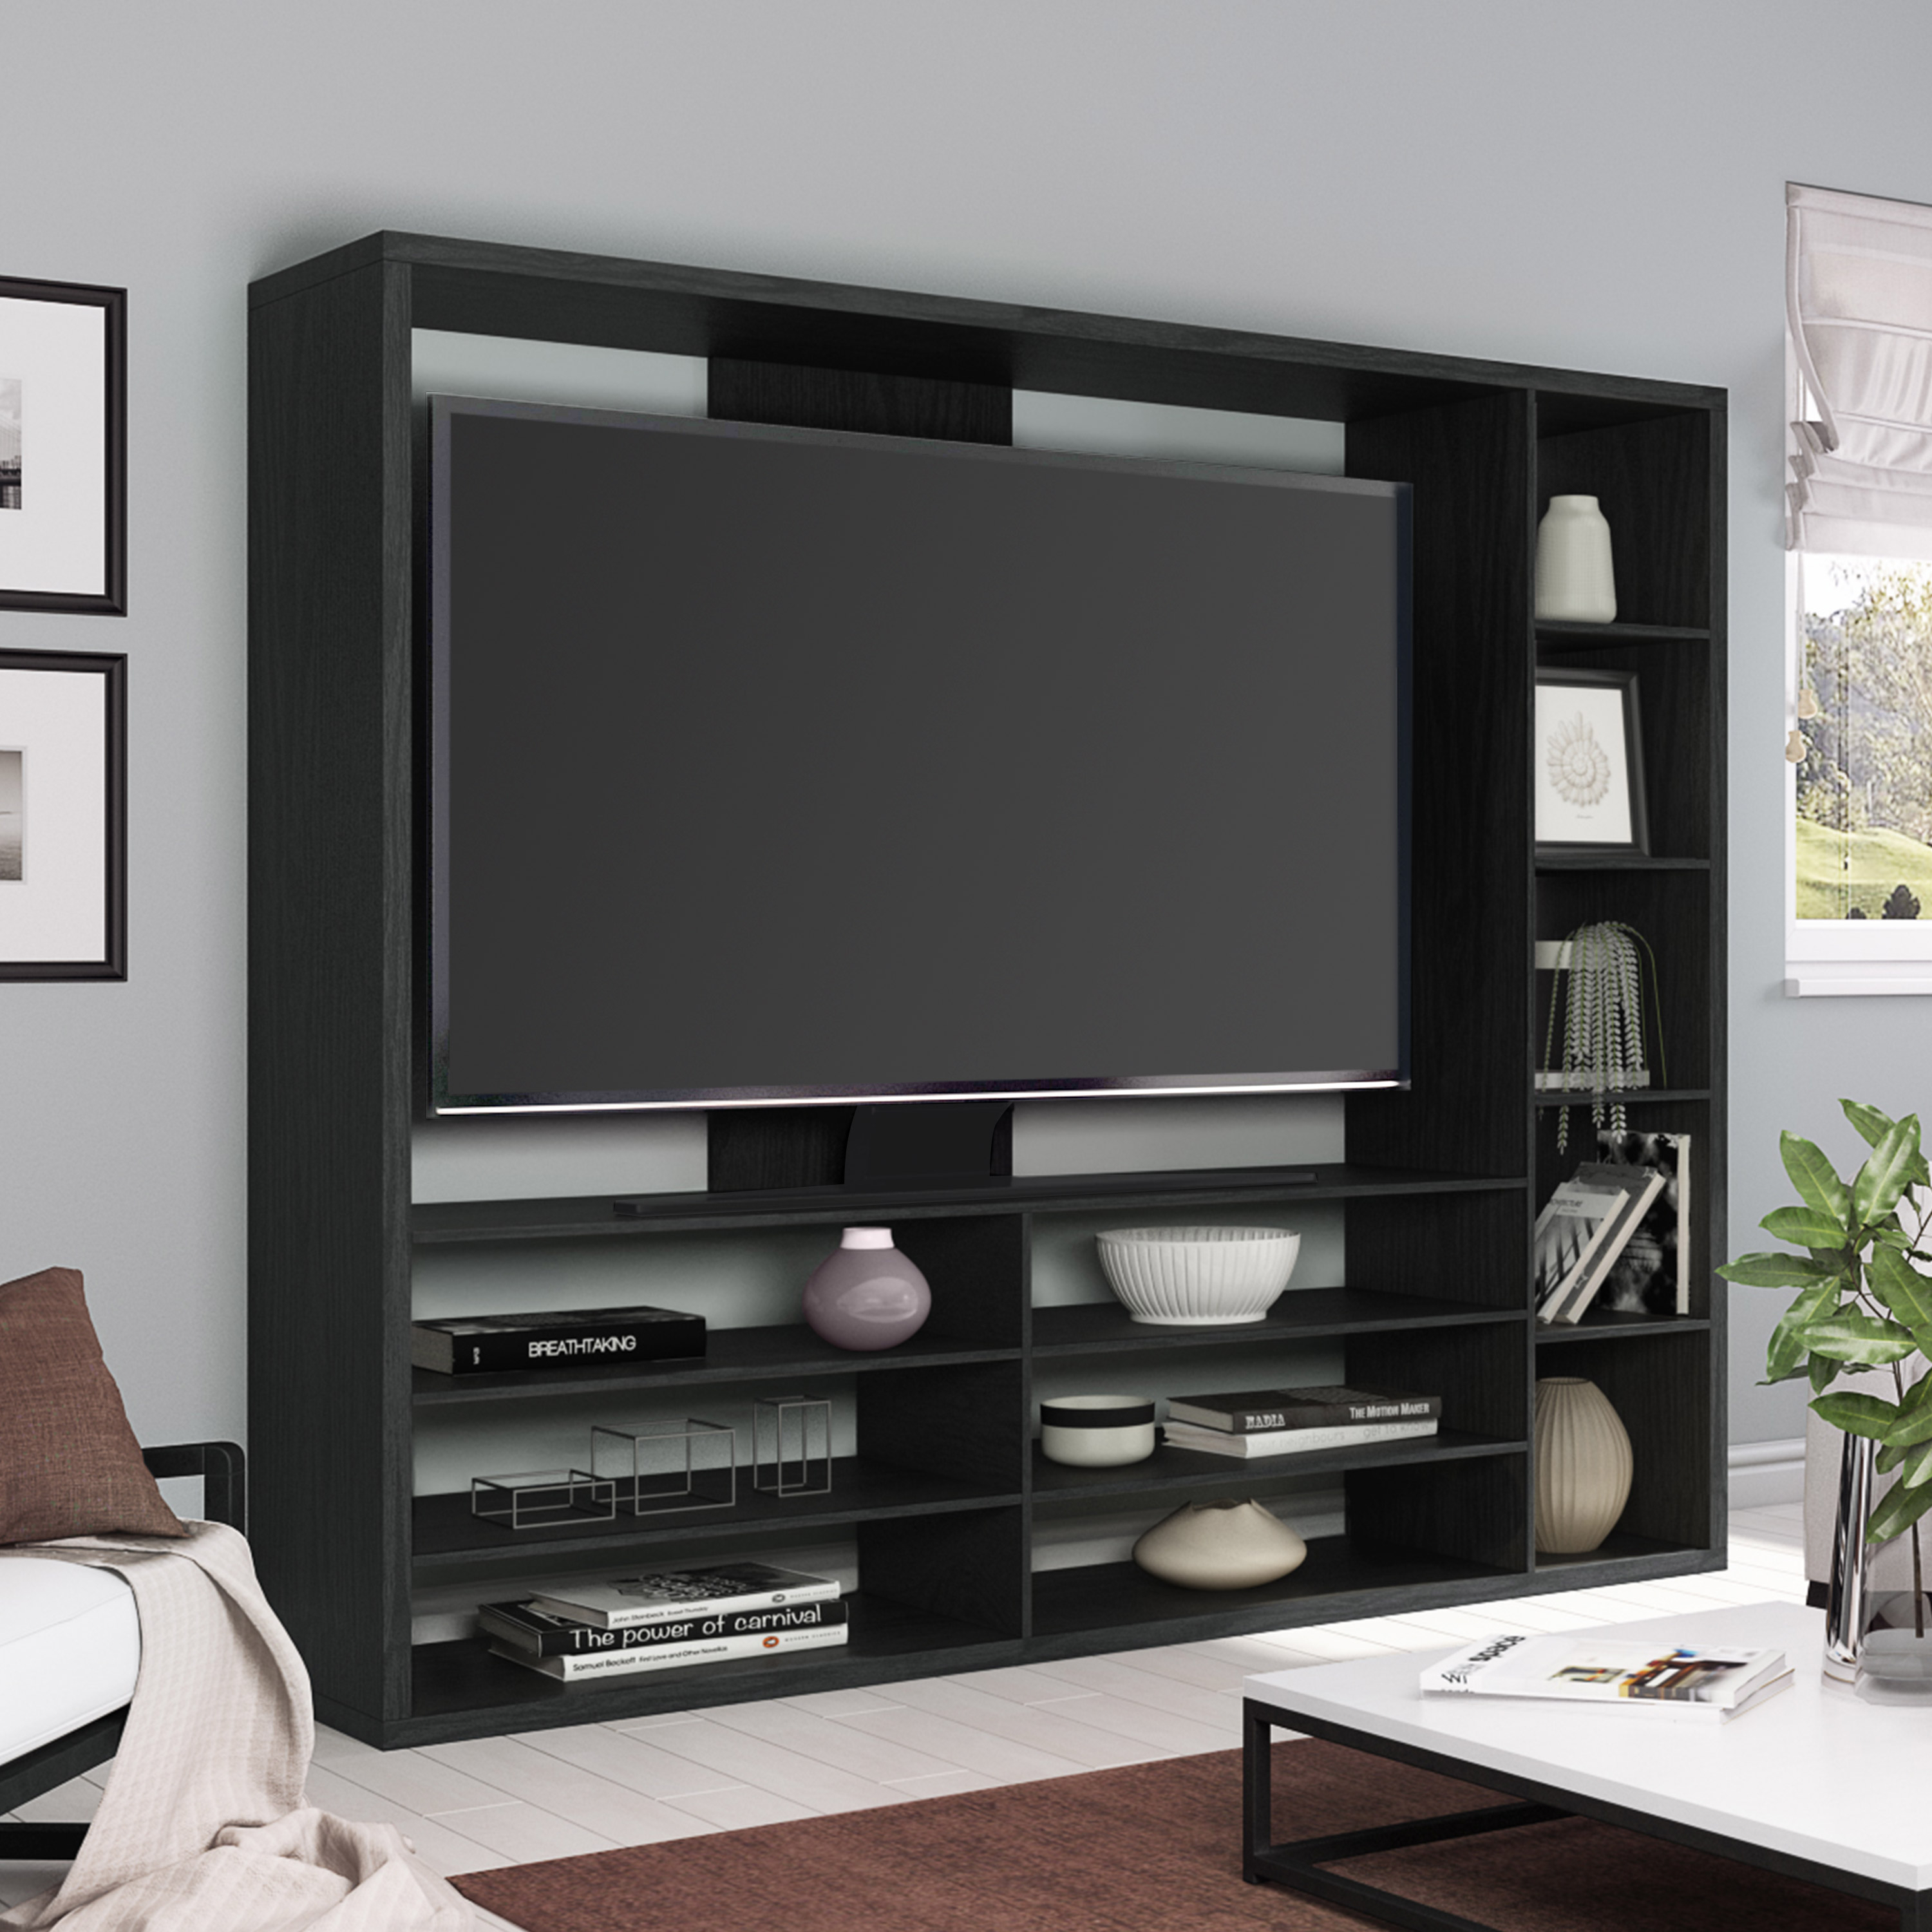 "Mainstays Entertainment Center For Tvs Up To 55"", Ideal Tv Stand For in Canyon 64 Inch Tv Stands (Image 17 of 30)"